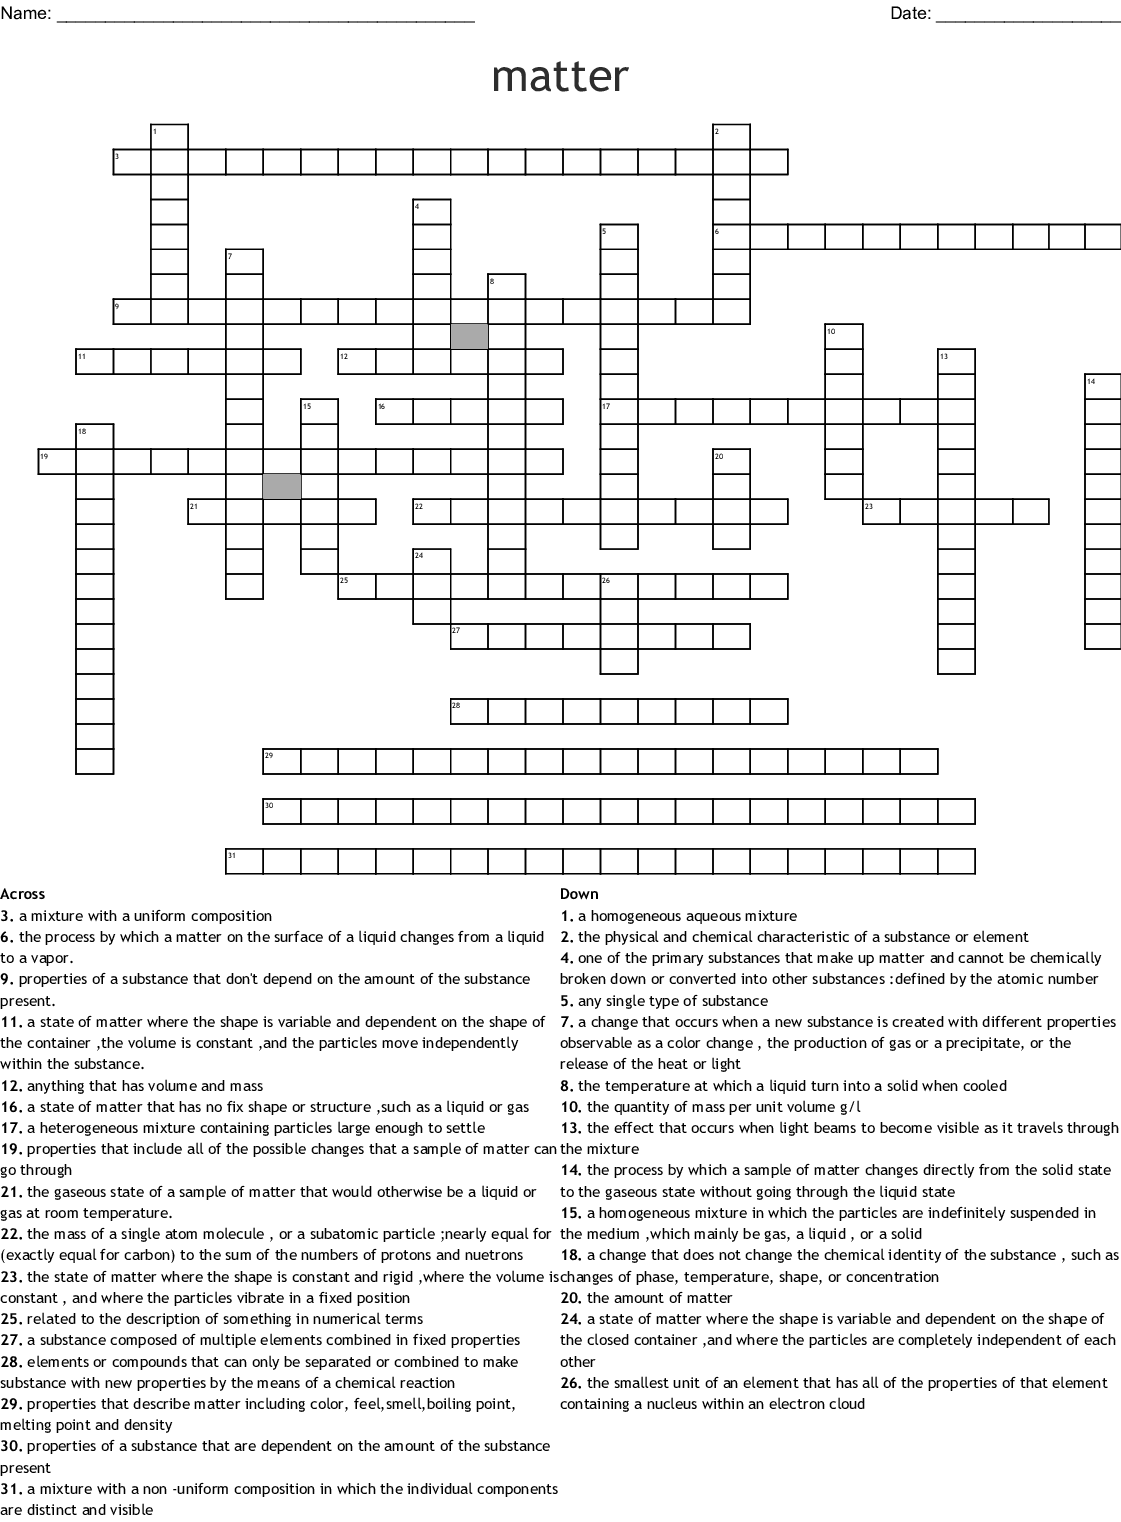 Matter And Change Chapter 2 Crossword